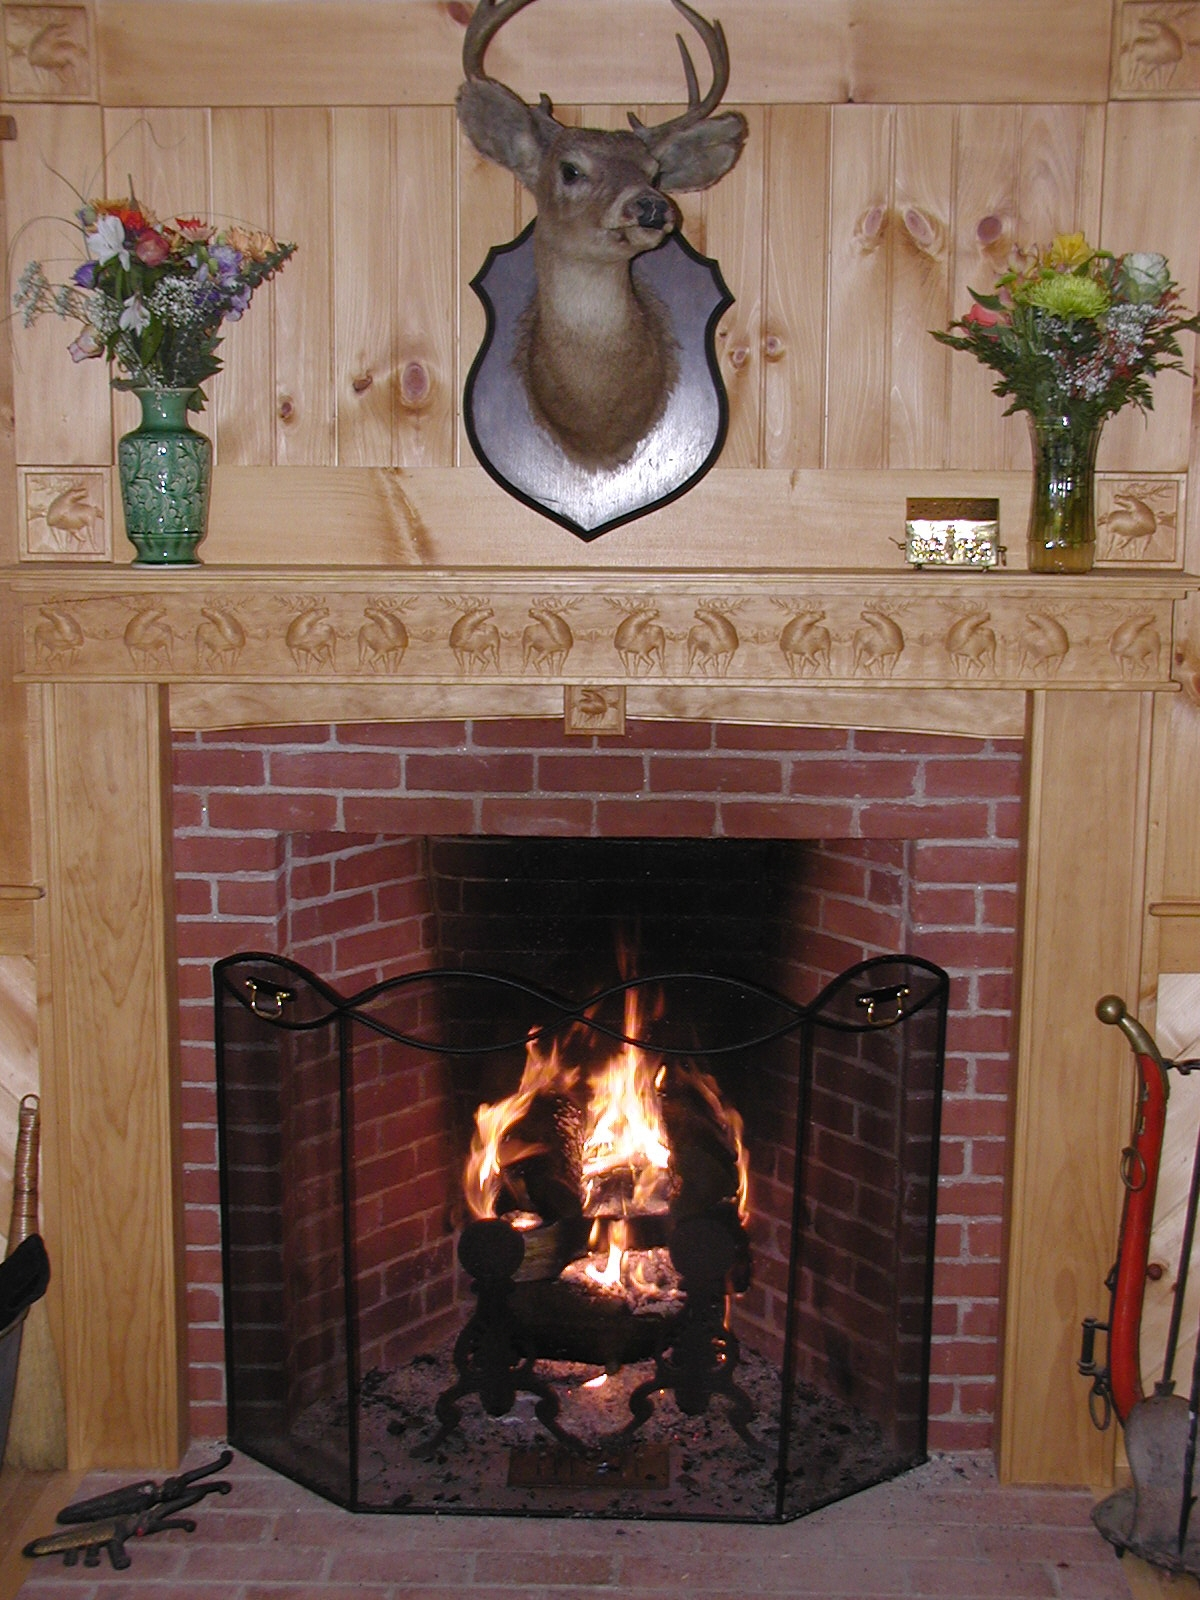 Best Lowes Fireplace Mantel for Warm Up Your Space Room Ideas: Lowes Fireplace Mantel | Prefabricated Fireplace Mantels | Lowes Fireplace Mantel Kits